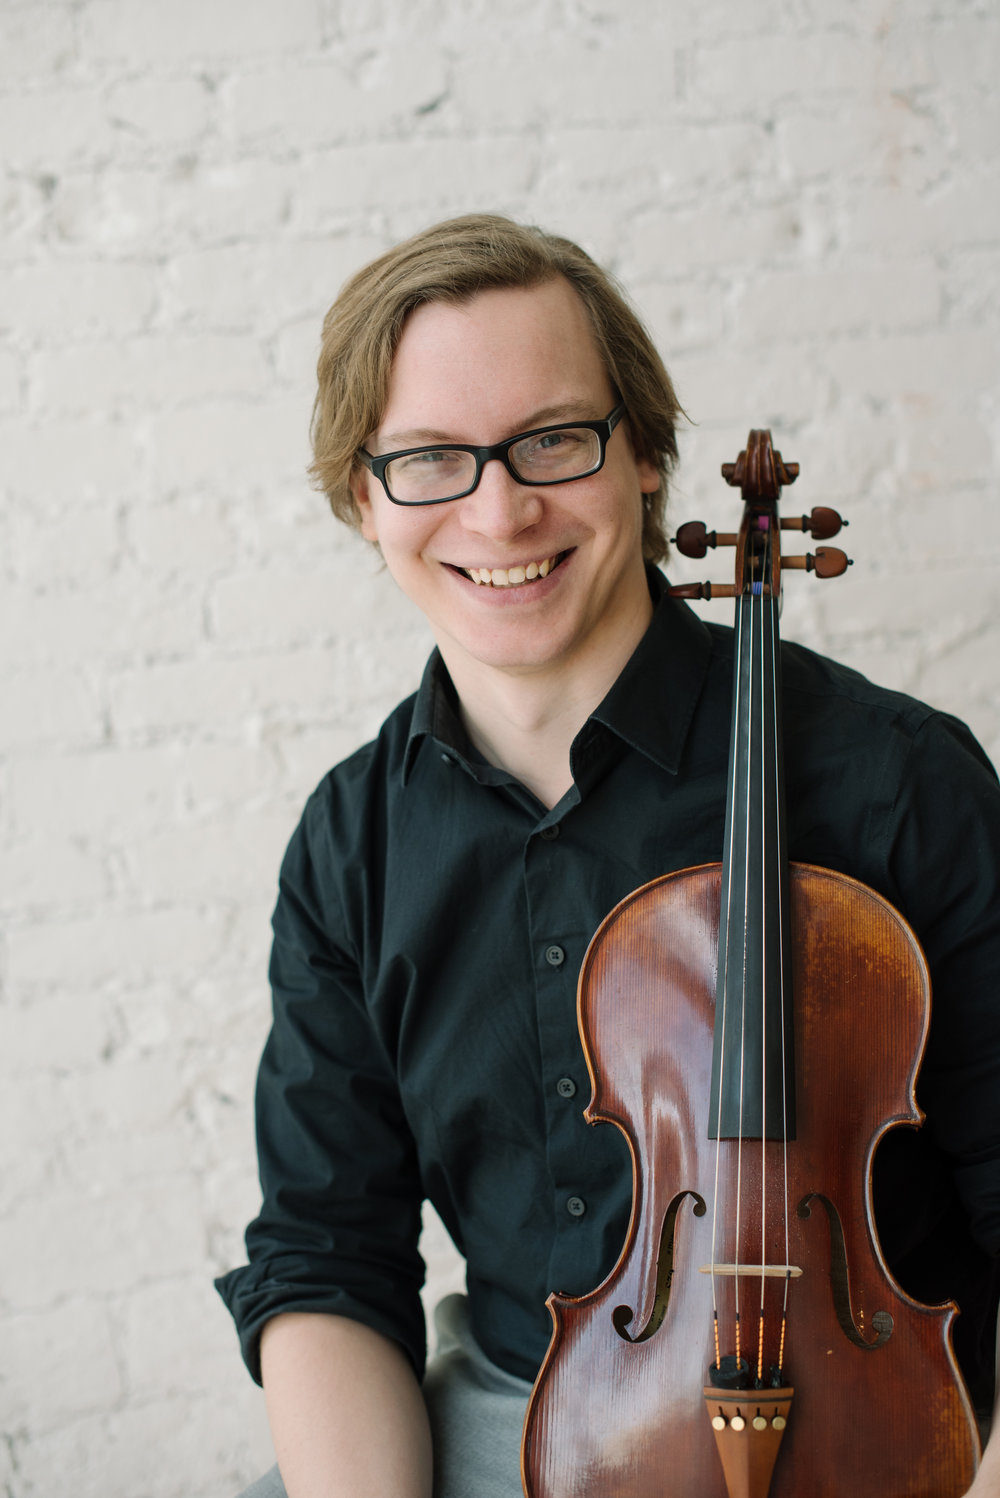 - TIM FEVERSTONVIOLATim began playing the violin at the age of 9, later focusing his studies on viola. Since then, he has earned his Masters of Music in Viola Performance from the University of Tennessee in 2015, studying under nationally recognized violist Hillary Herndon, after earning his Bachelors in Viola Performance from Marshall University in 2013. He has participated in such events as Viola Intensive, Eastman Summer Viola Workshop, The Karen Tuttle Workshop, and the annual University of Tennessee Viola Celebration. Tim is also a teacher and avid enthusiast for the advancement of the viola, commissioning and performing new works for the instrument. When not playing for Viva la Strings, Tim can be found teaching viola at Hauer Music in Centerville and playing frequenly at Fairhaven Church Classics Worship strings quartet.